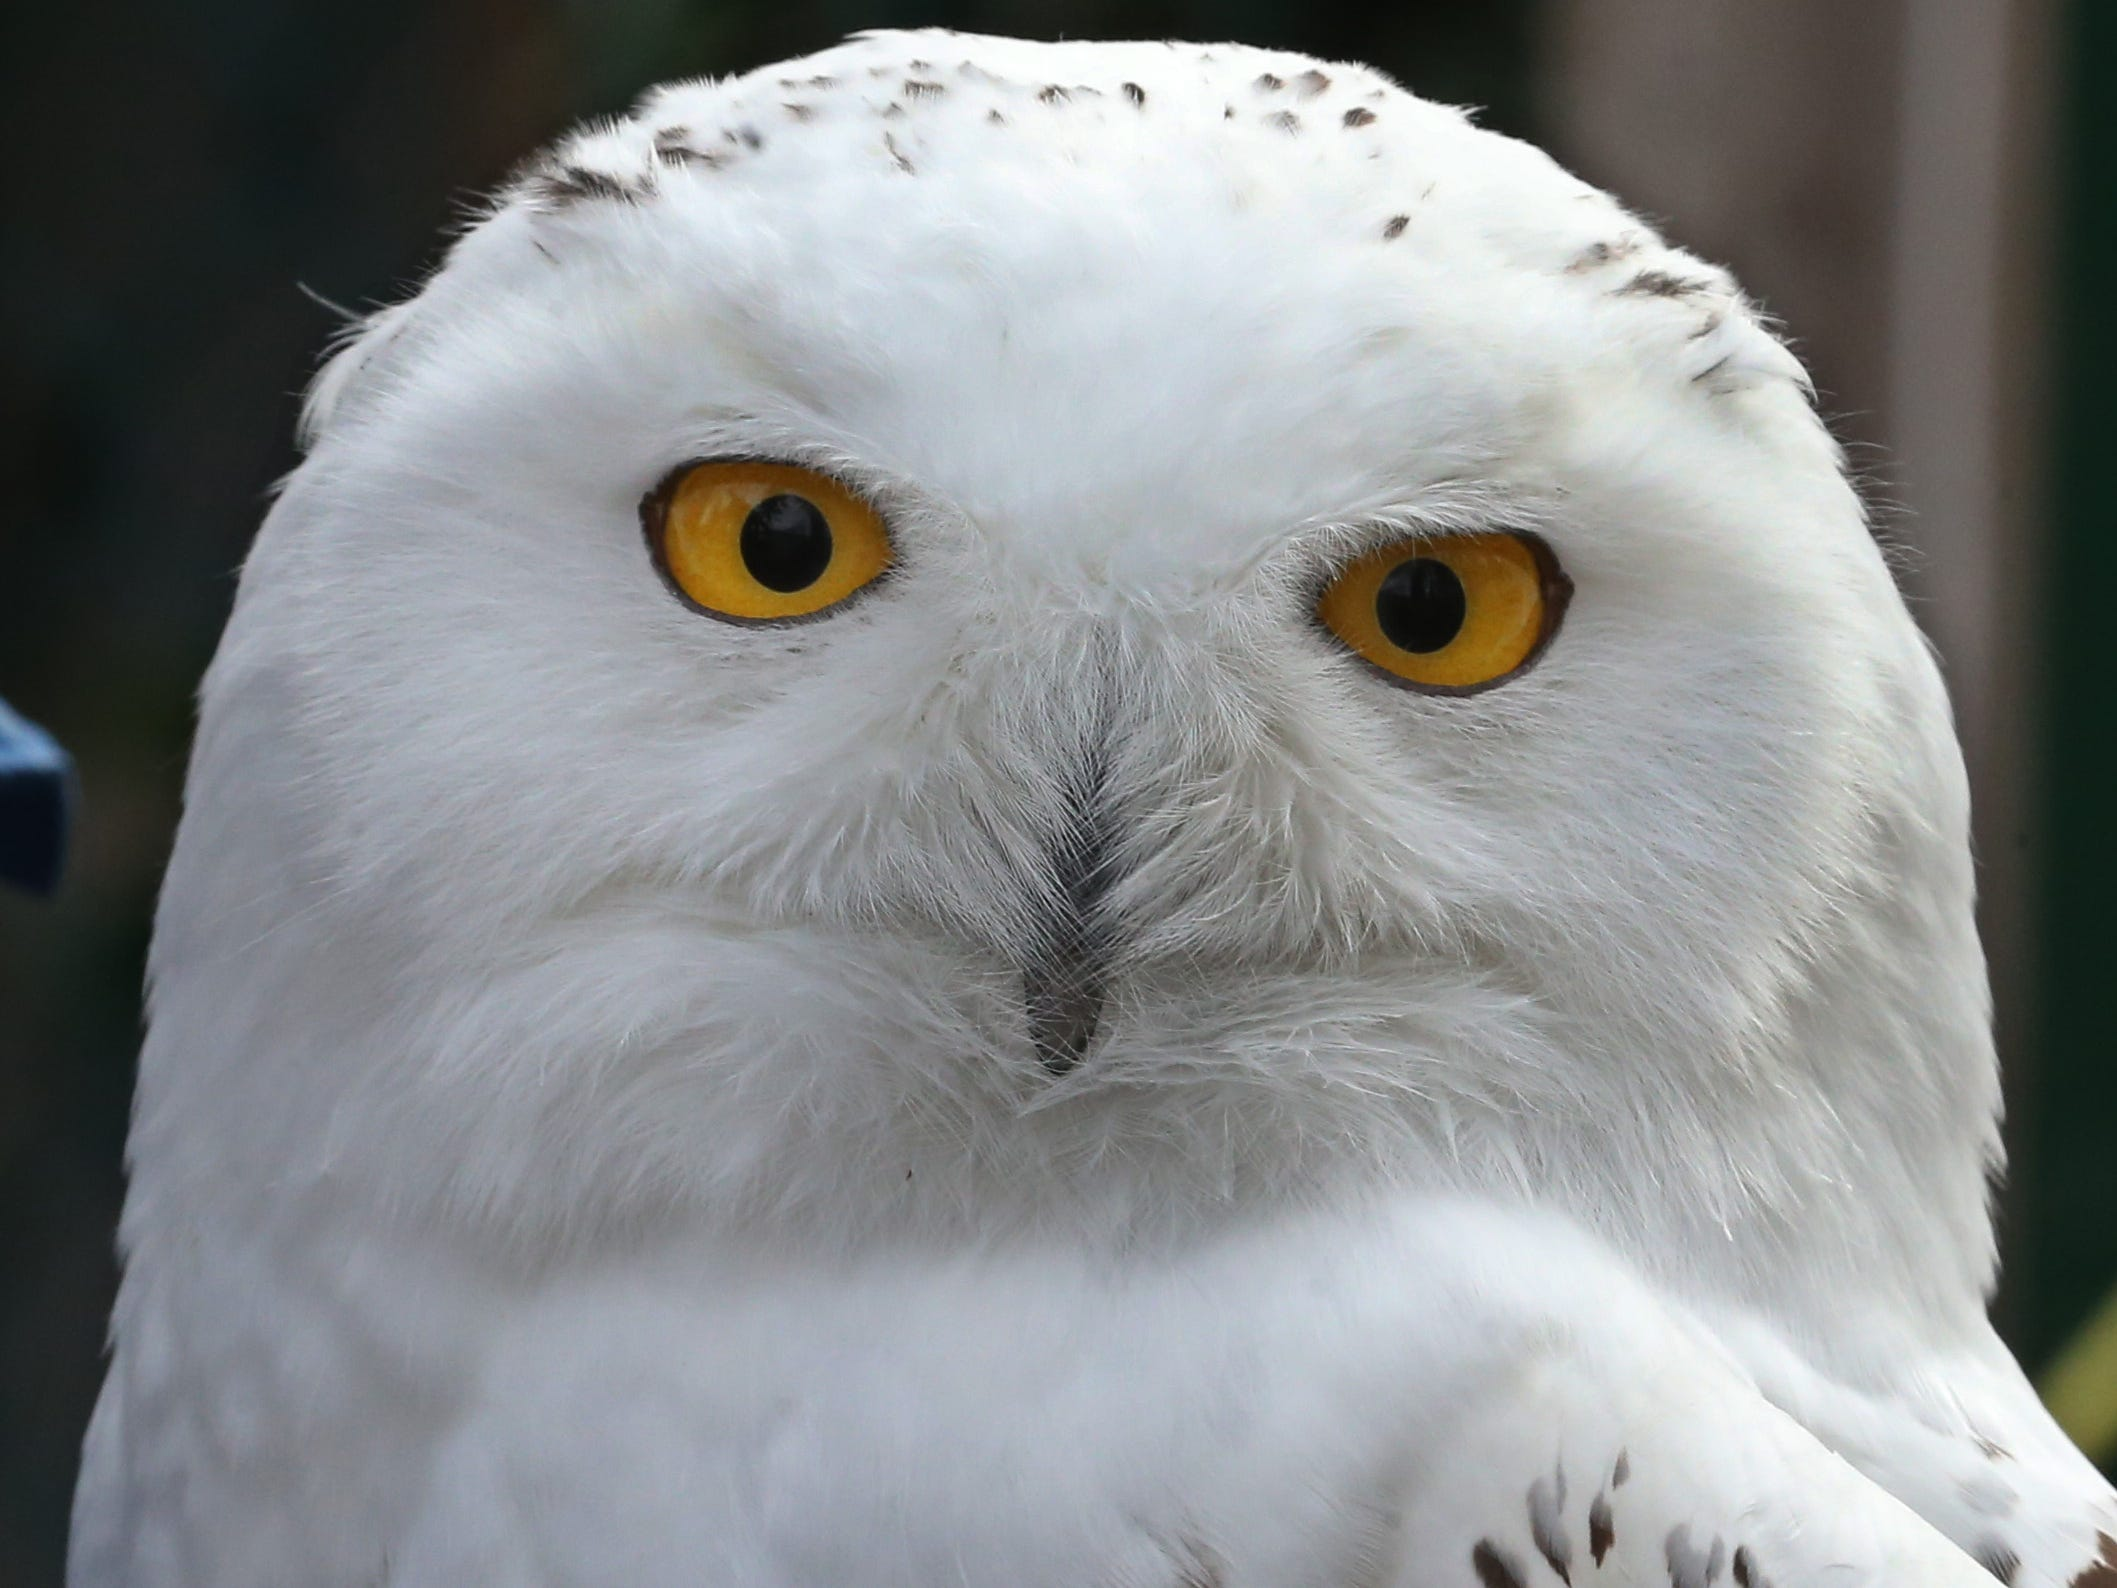 Teddy, a snowy owl, at Wild Wings Inc.